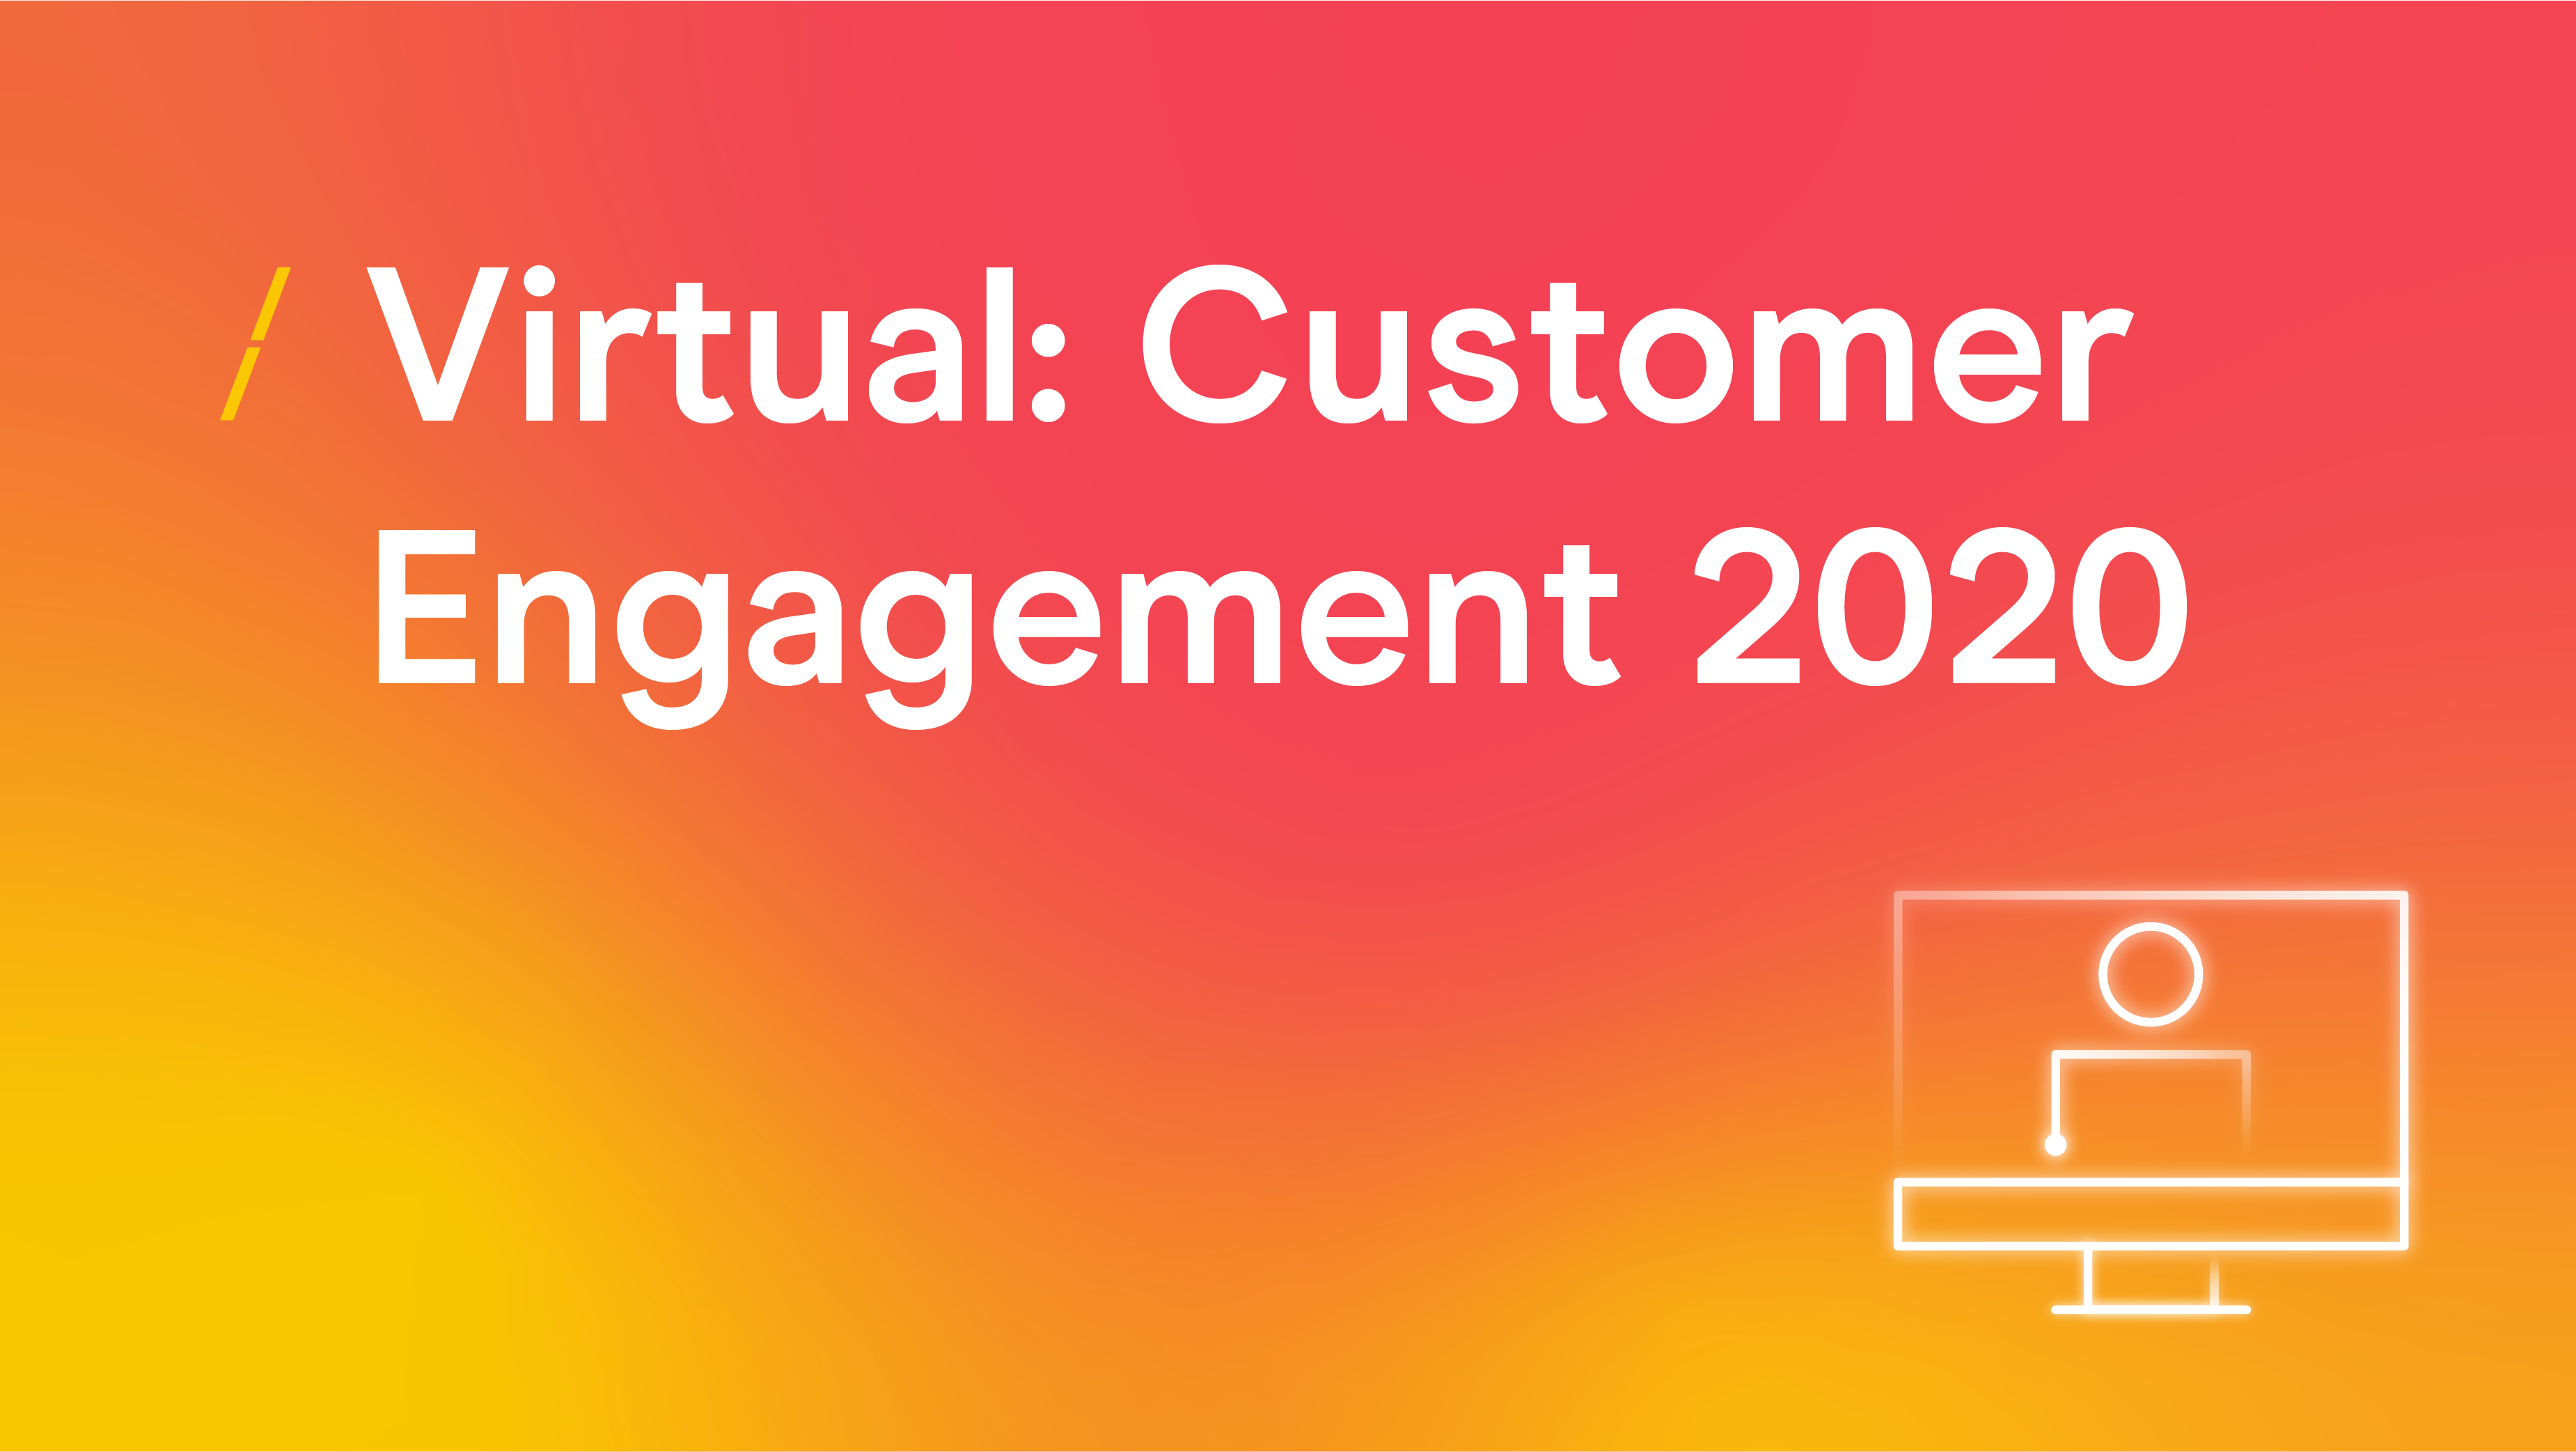 Virtual- Customer Engagement 2020_General articles_General articles[6].png